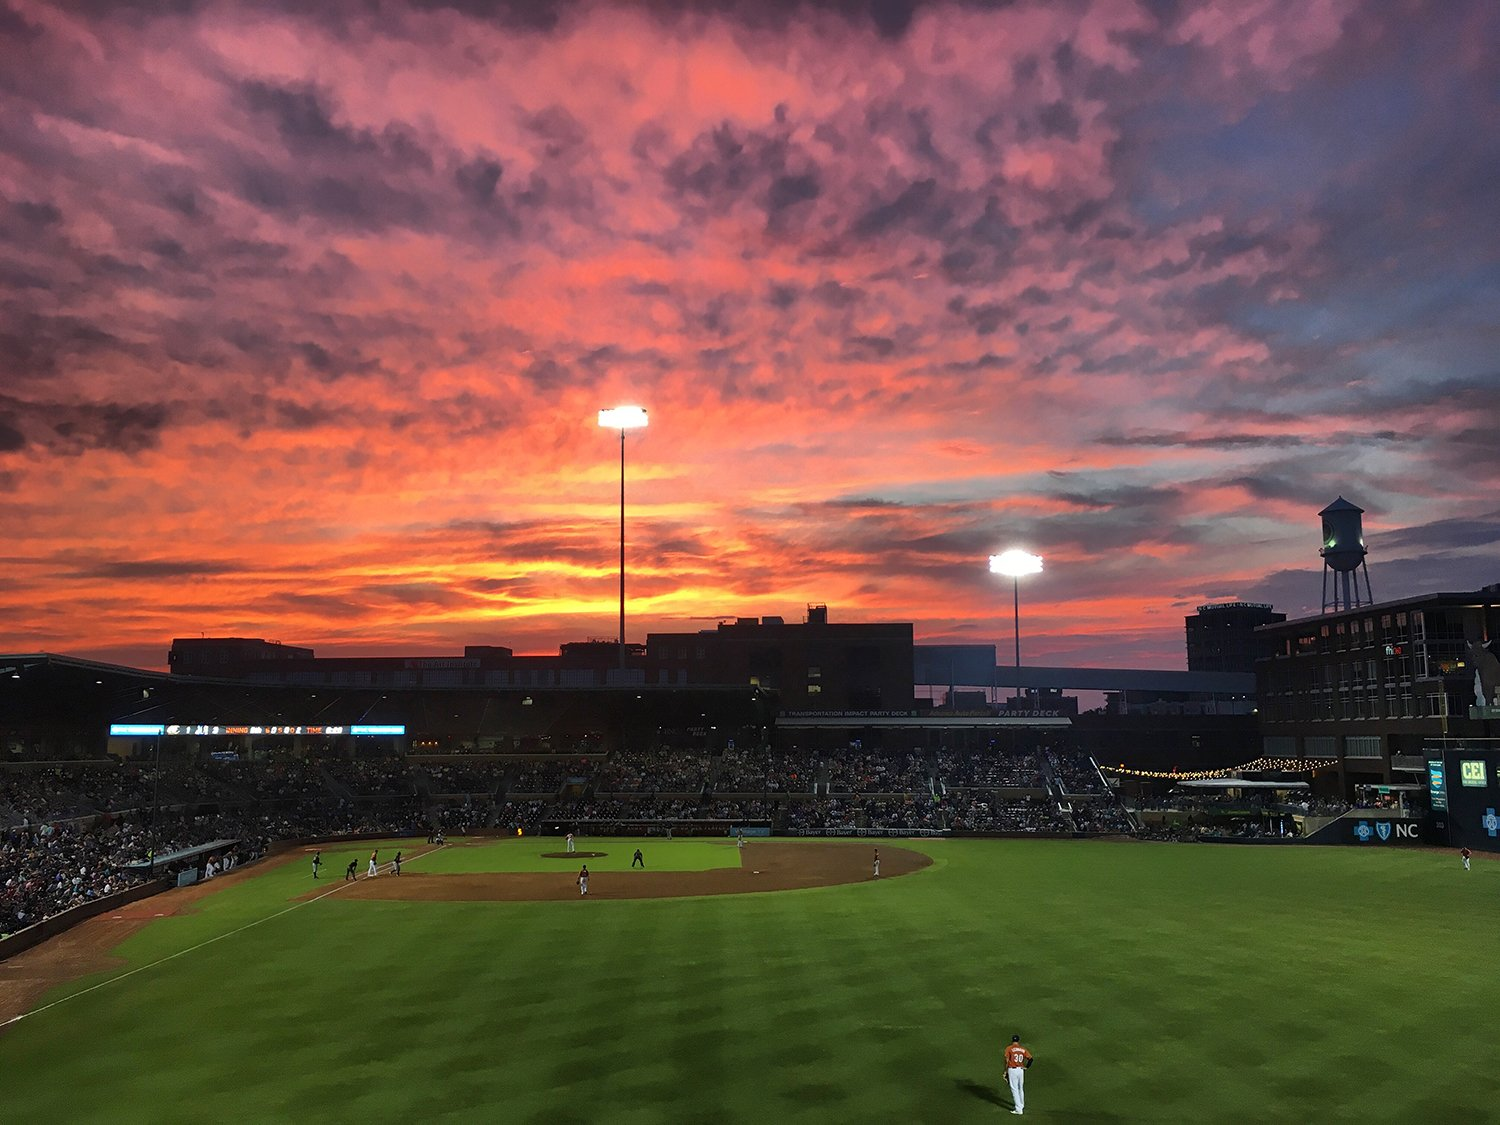 This photo is up for @MiLB's Photo of the Year. Give the #DurhamBulls some love.  Vote: https://t.co/JoCHGu1cSy https://t.co/EjL4rTT4QS